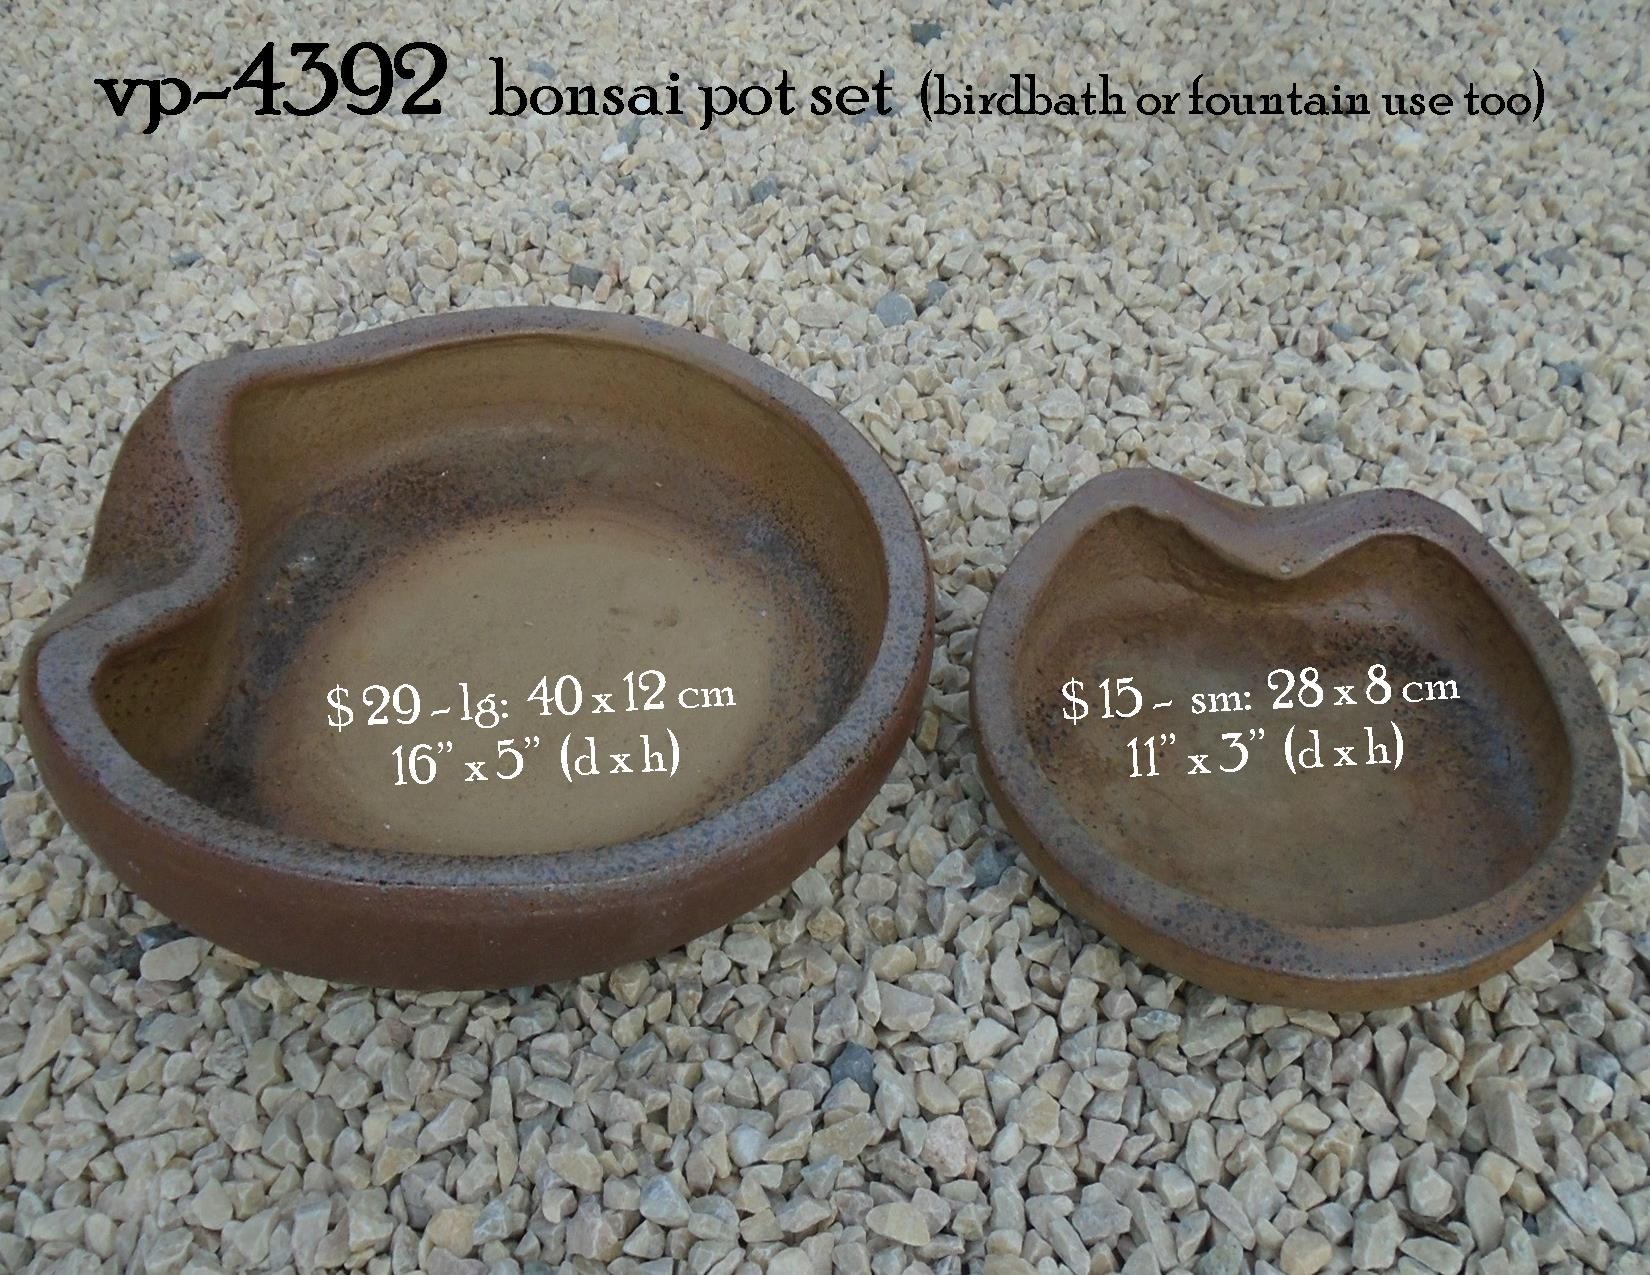 vp-4392   bonsai pot set